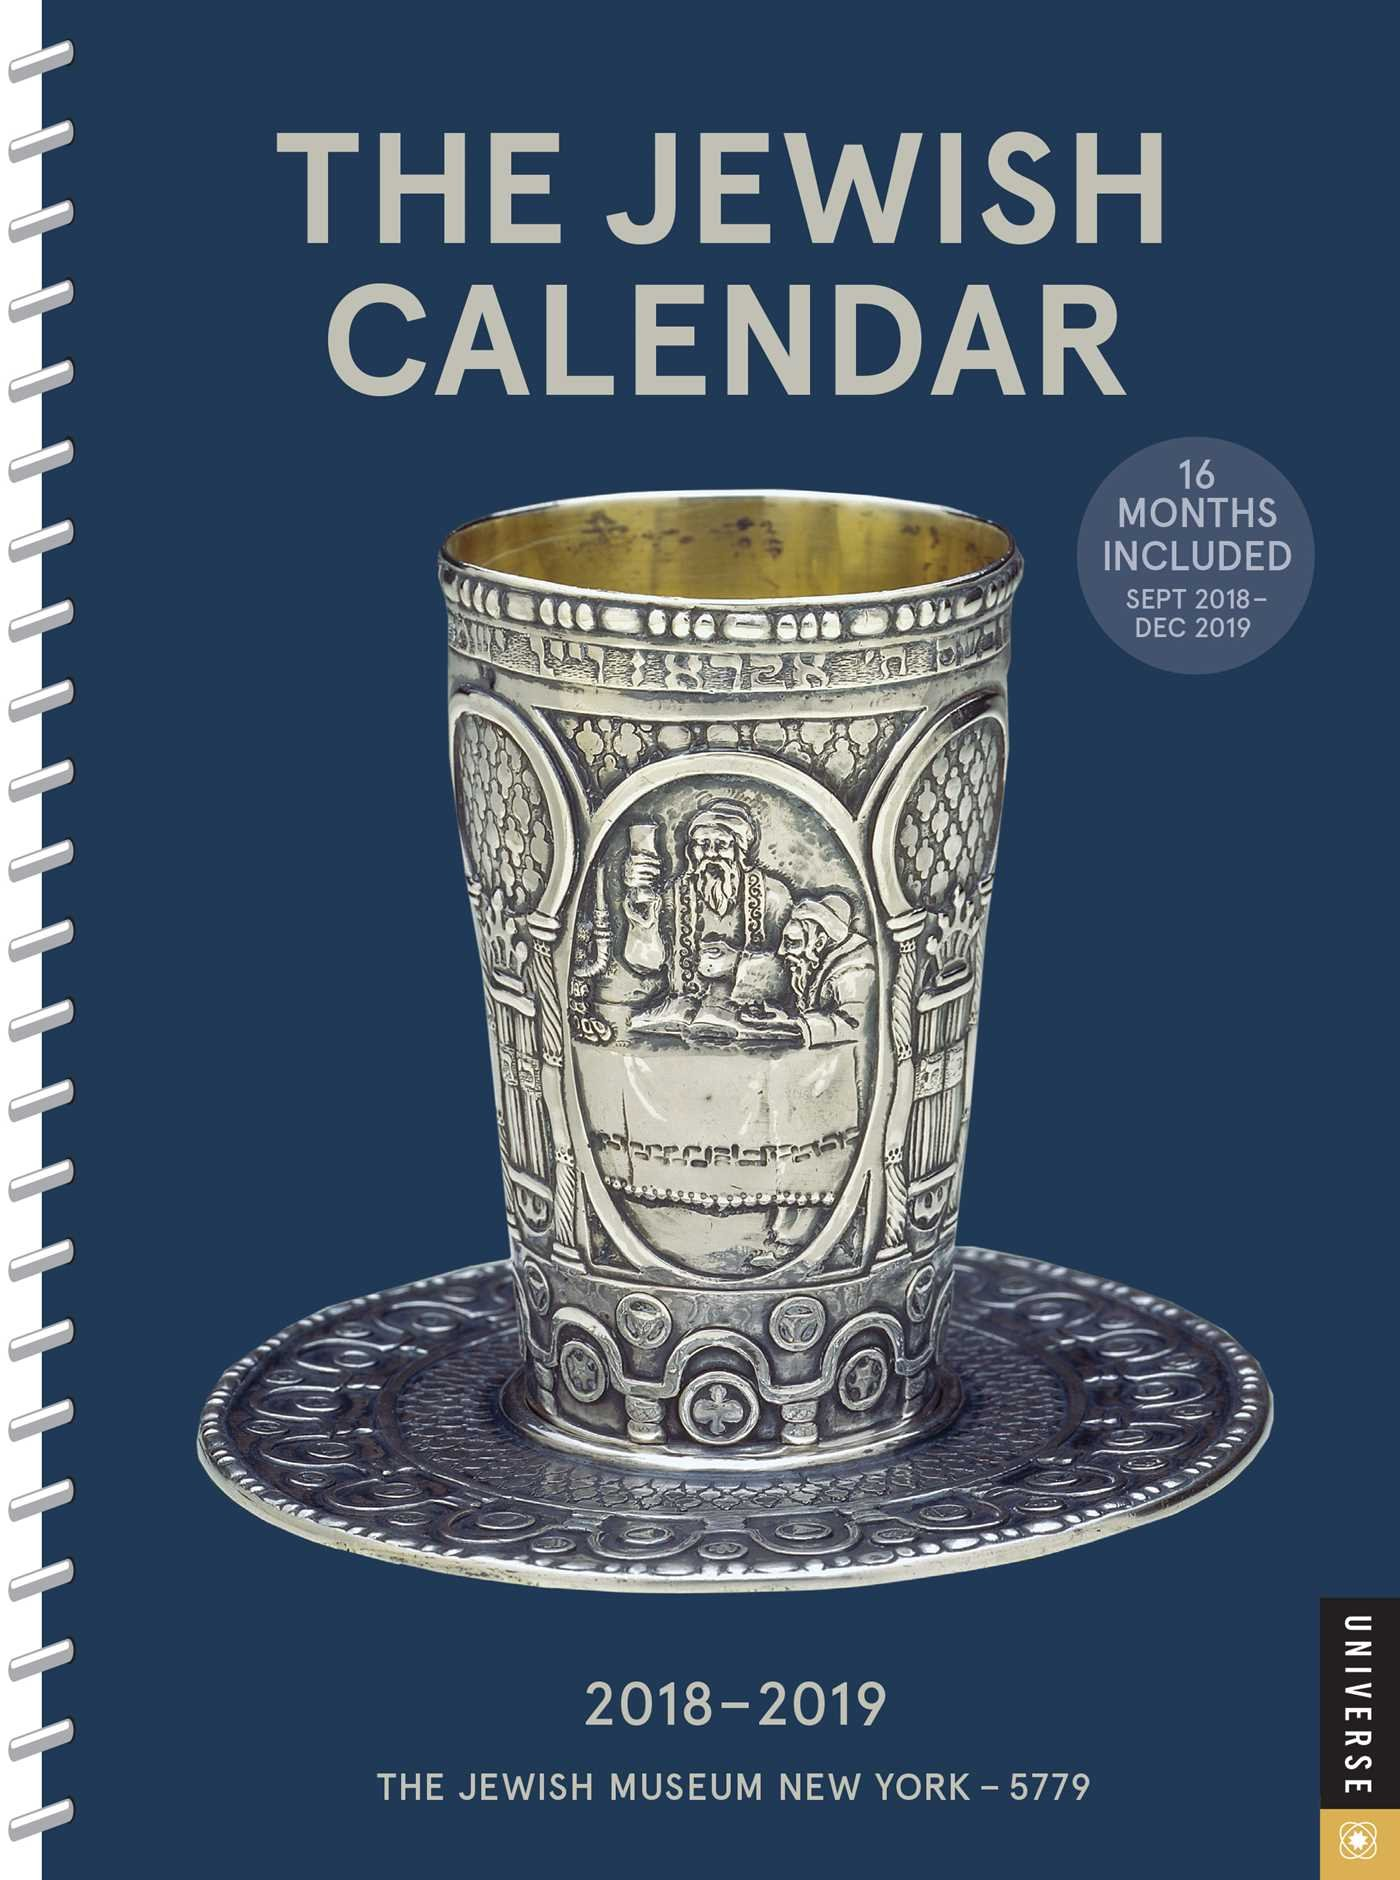 Jewish Calendar Year 2019 With The 2018 Engagement 5779 16 Month